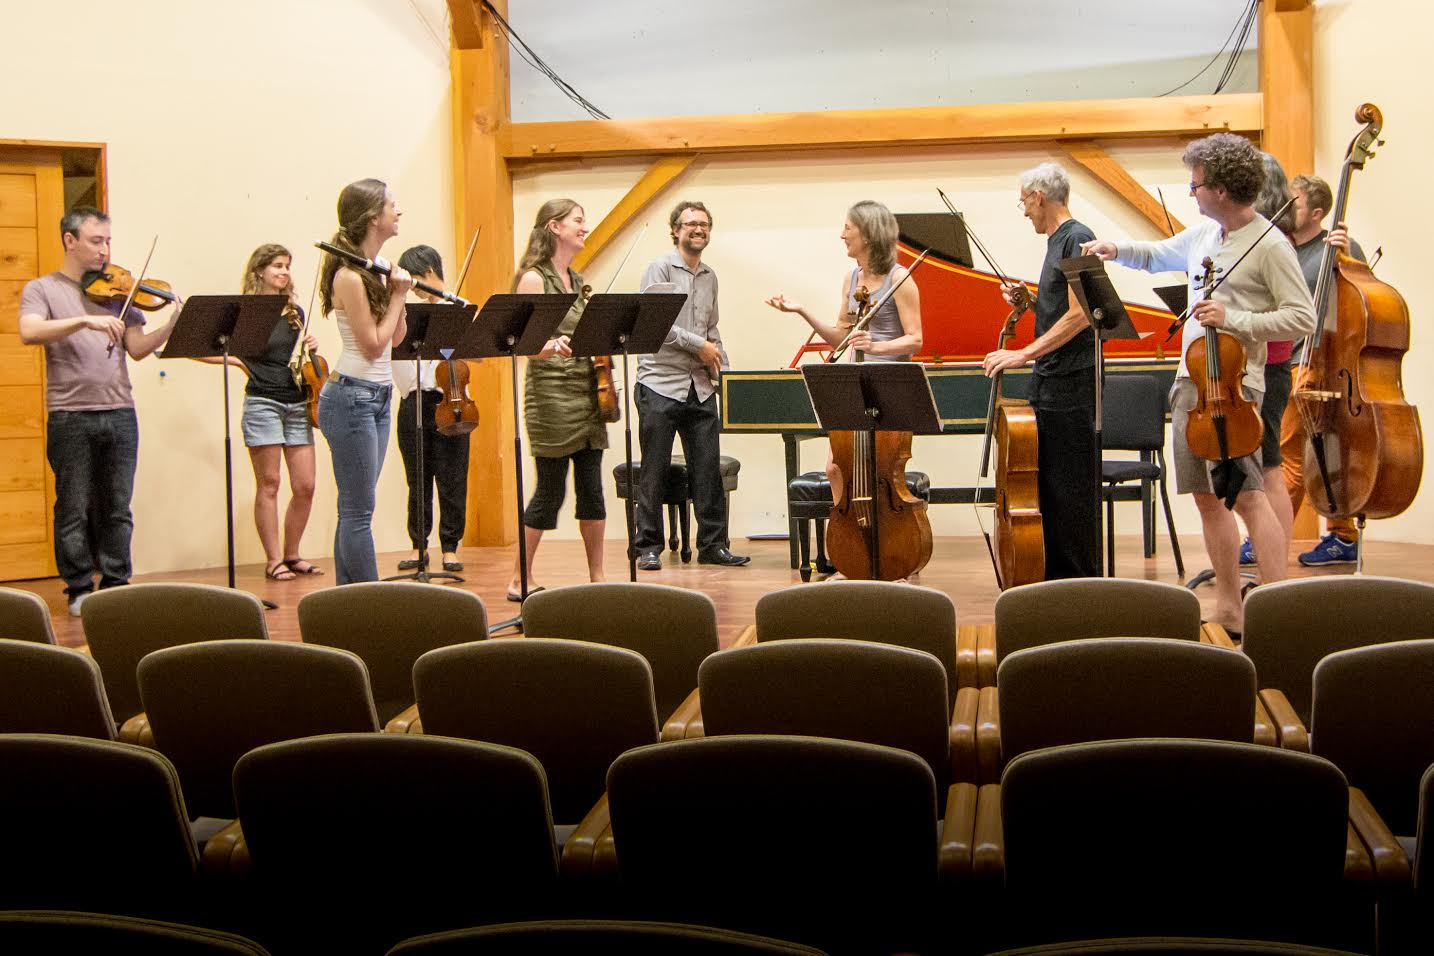 Sarasa rehearsing before their concert in July at the Big Barn in Putney, VT